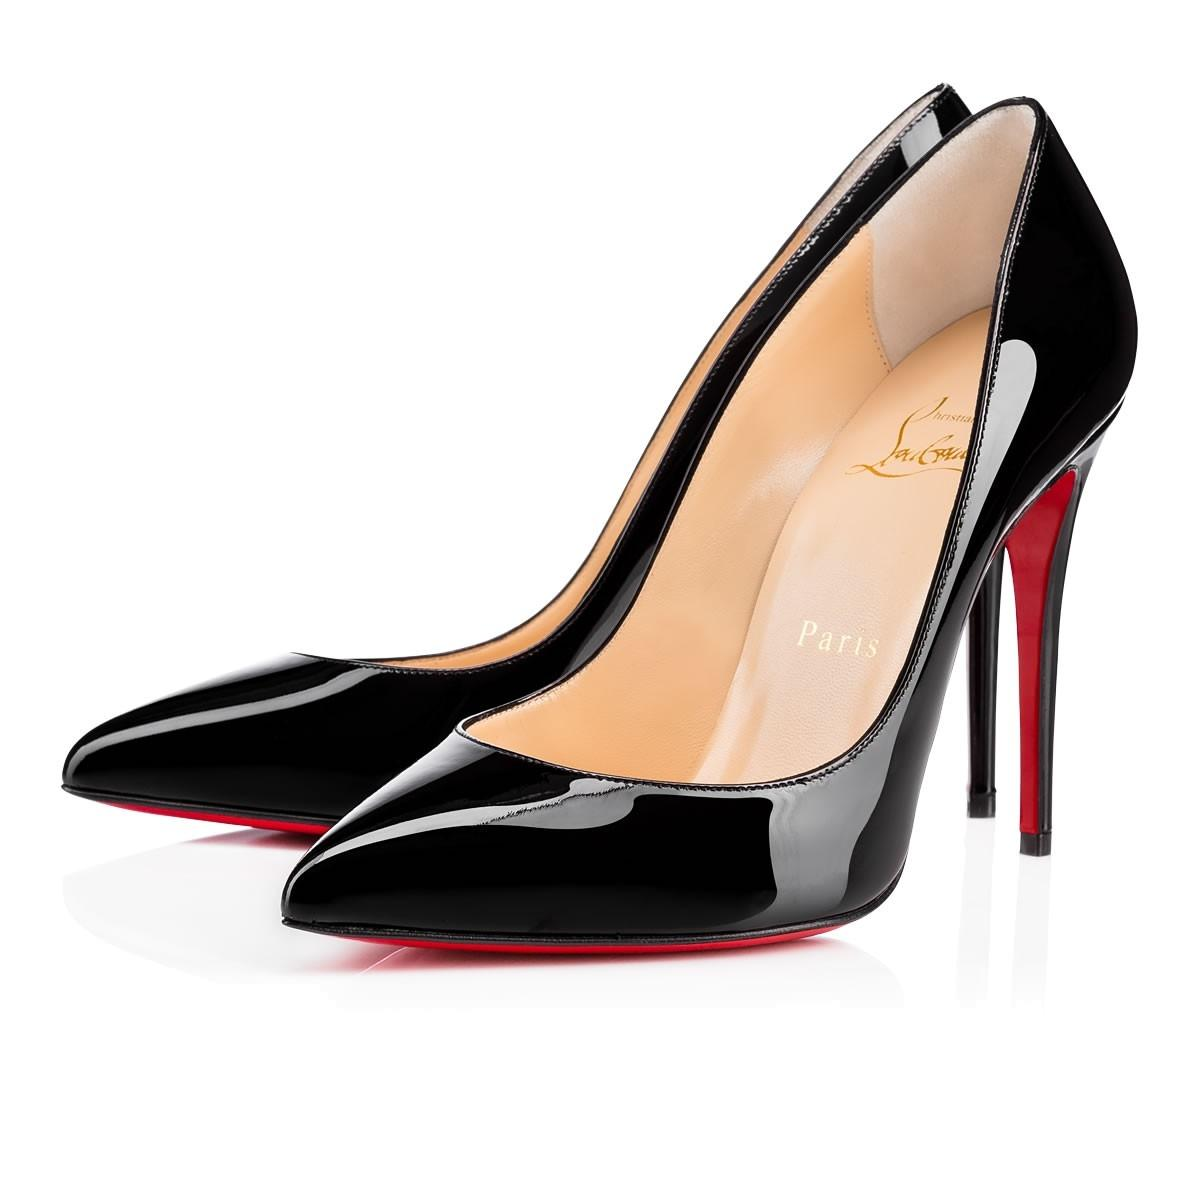 Christian Louboutin Black Pigalle Follies 100 Patent Leather Classic Stiletto Pointed Heel Pumps Size EU 35.5 (Approx. US 5.5) Regular (M, B)